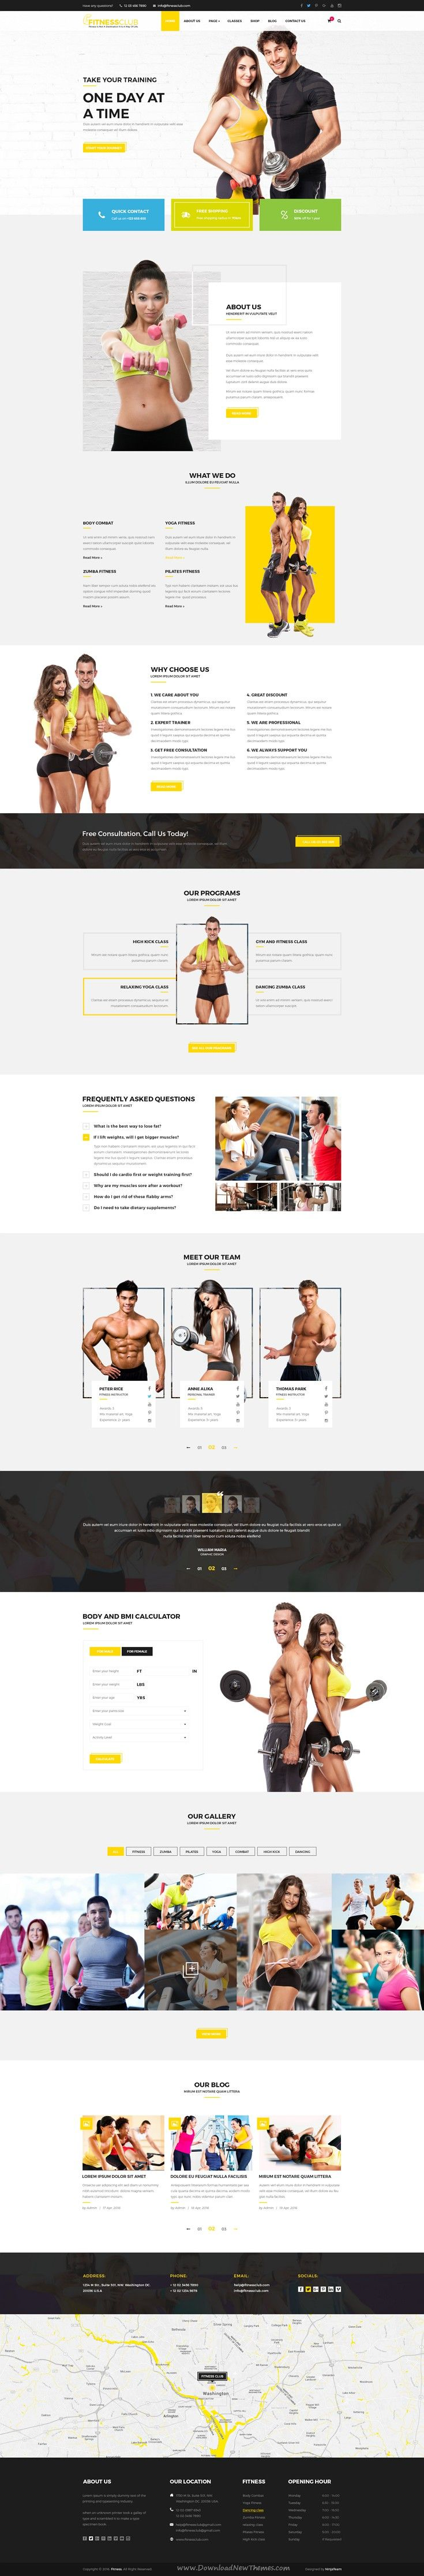 221 best Workout Website images on Pinterest | Website designs ...